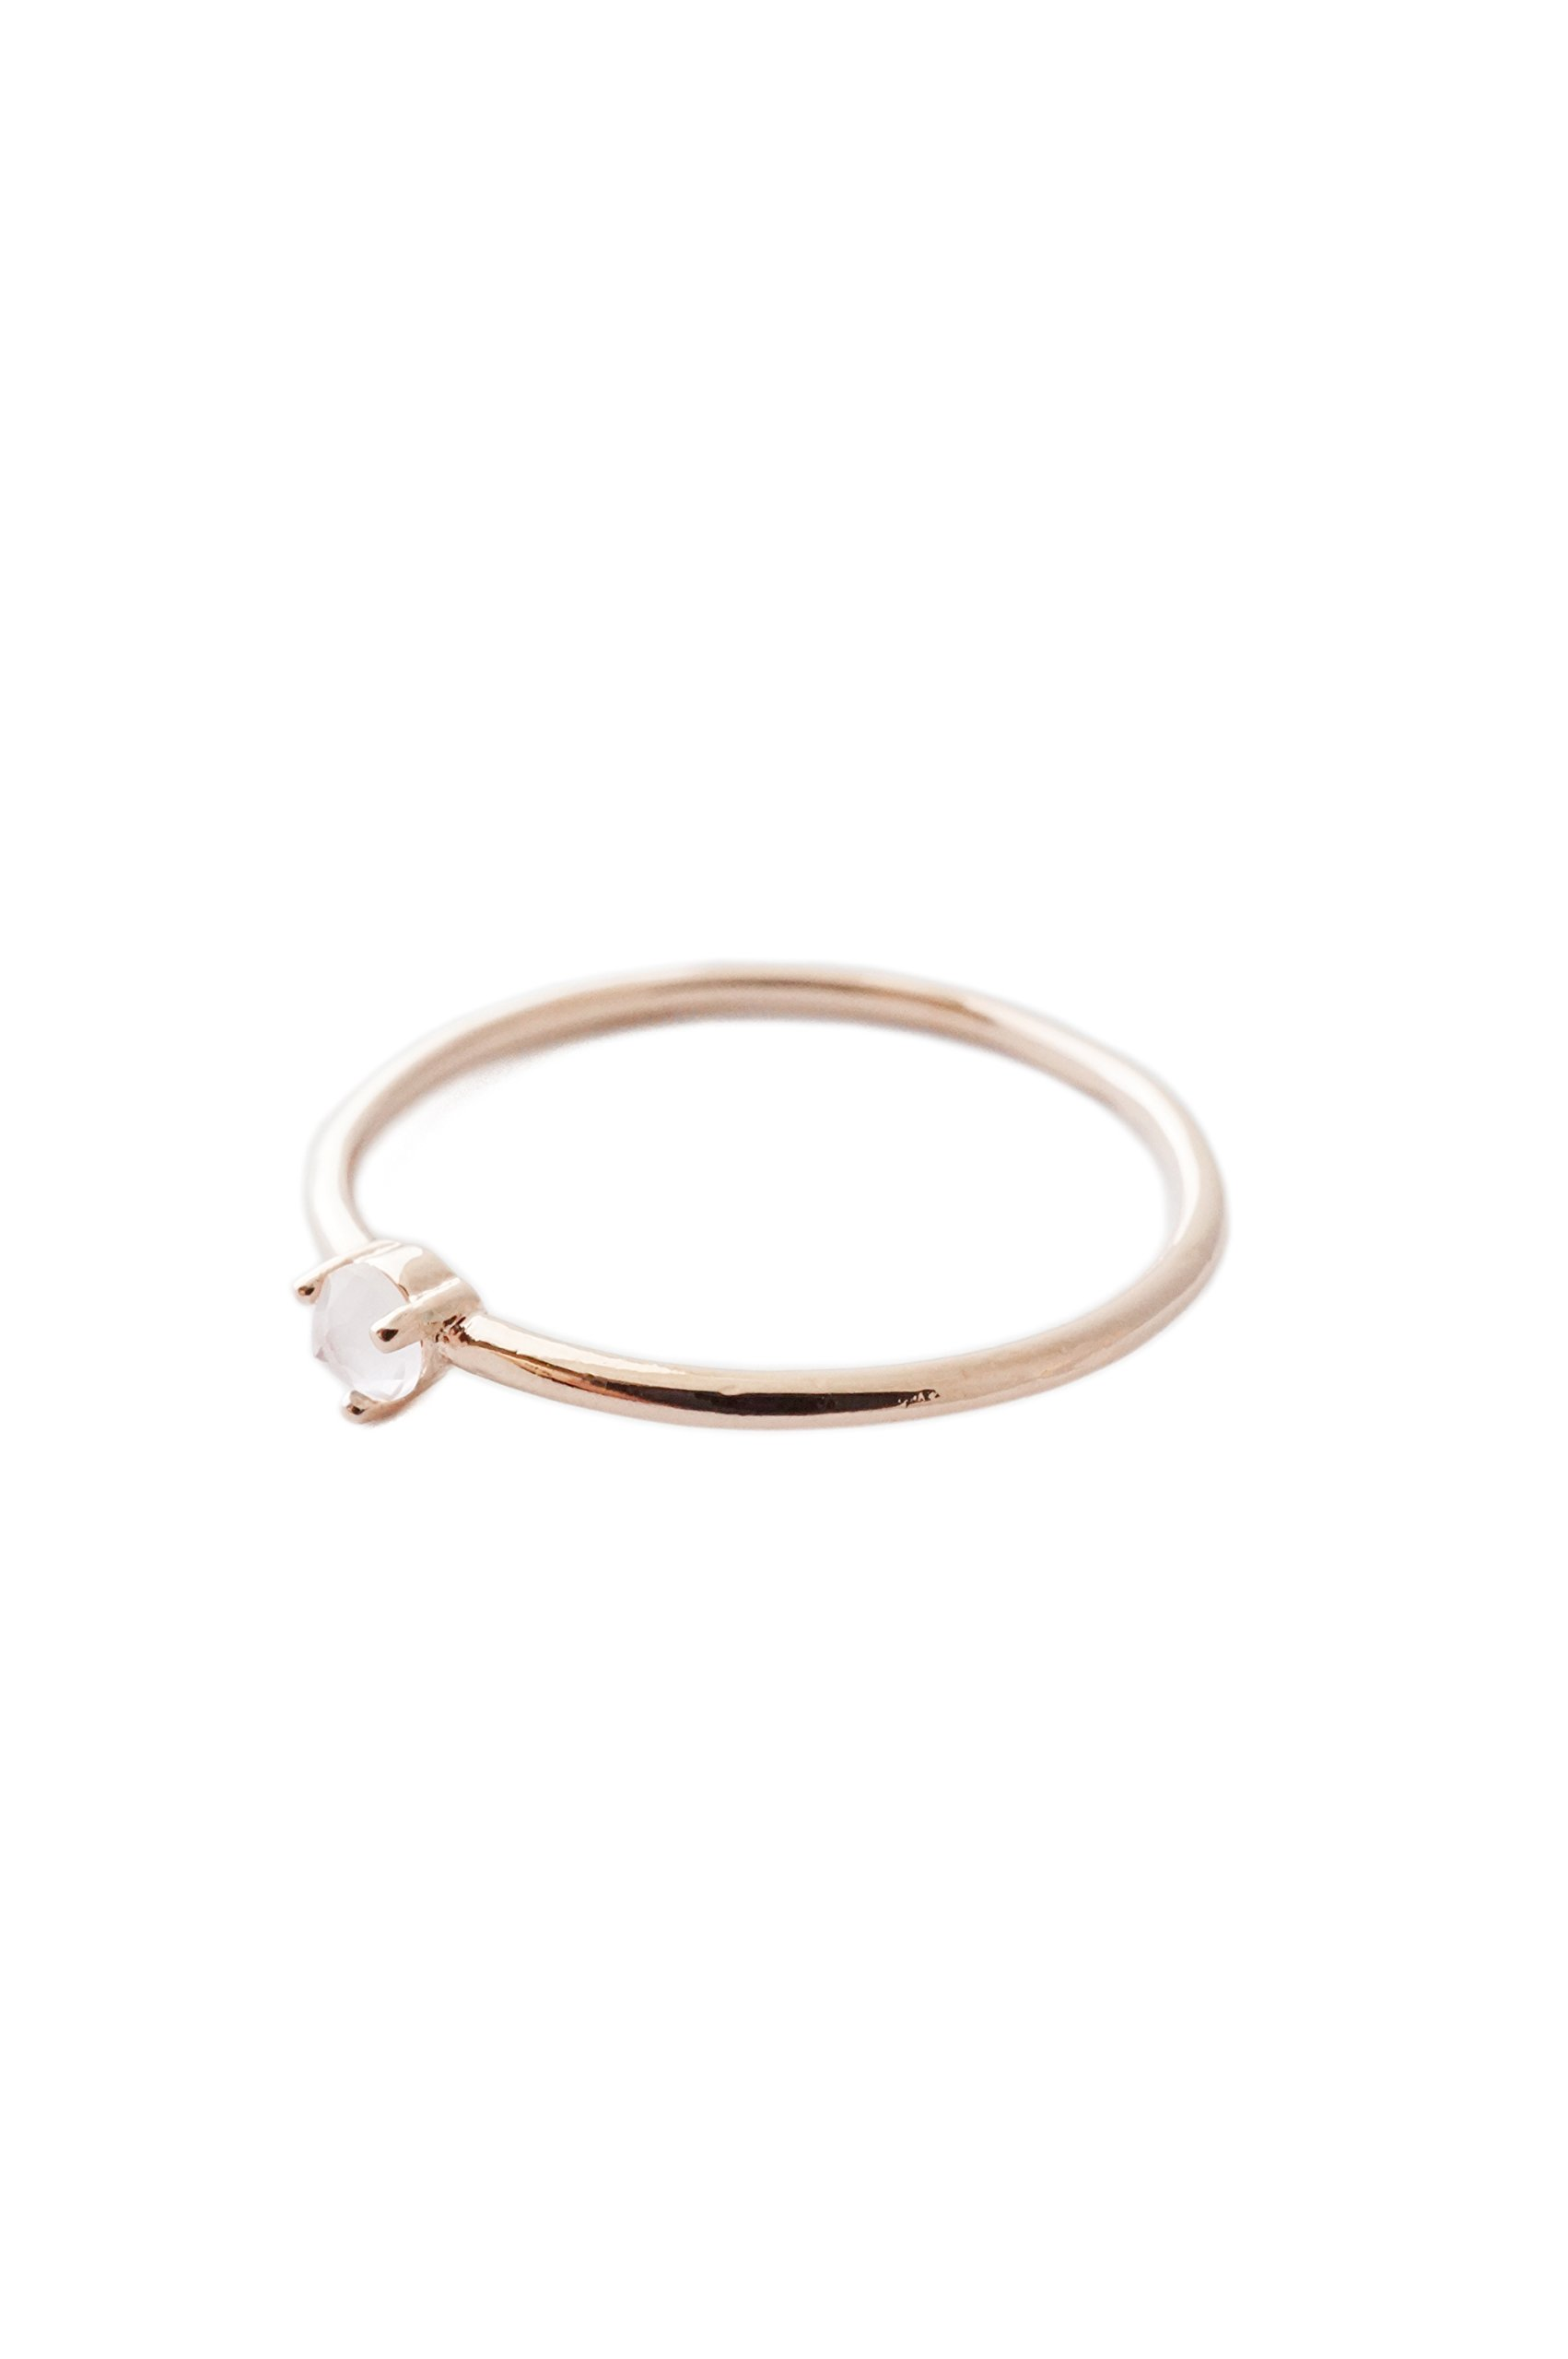 HONEYCAT Rose Quartz Crystal Point in 18k Rose Gold Plate | Minimalist, Delicate Jewelry (Rose Gold 6)